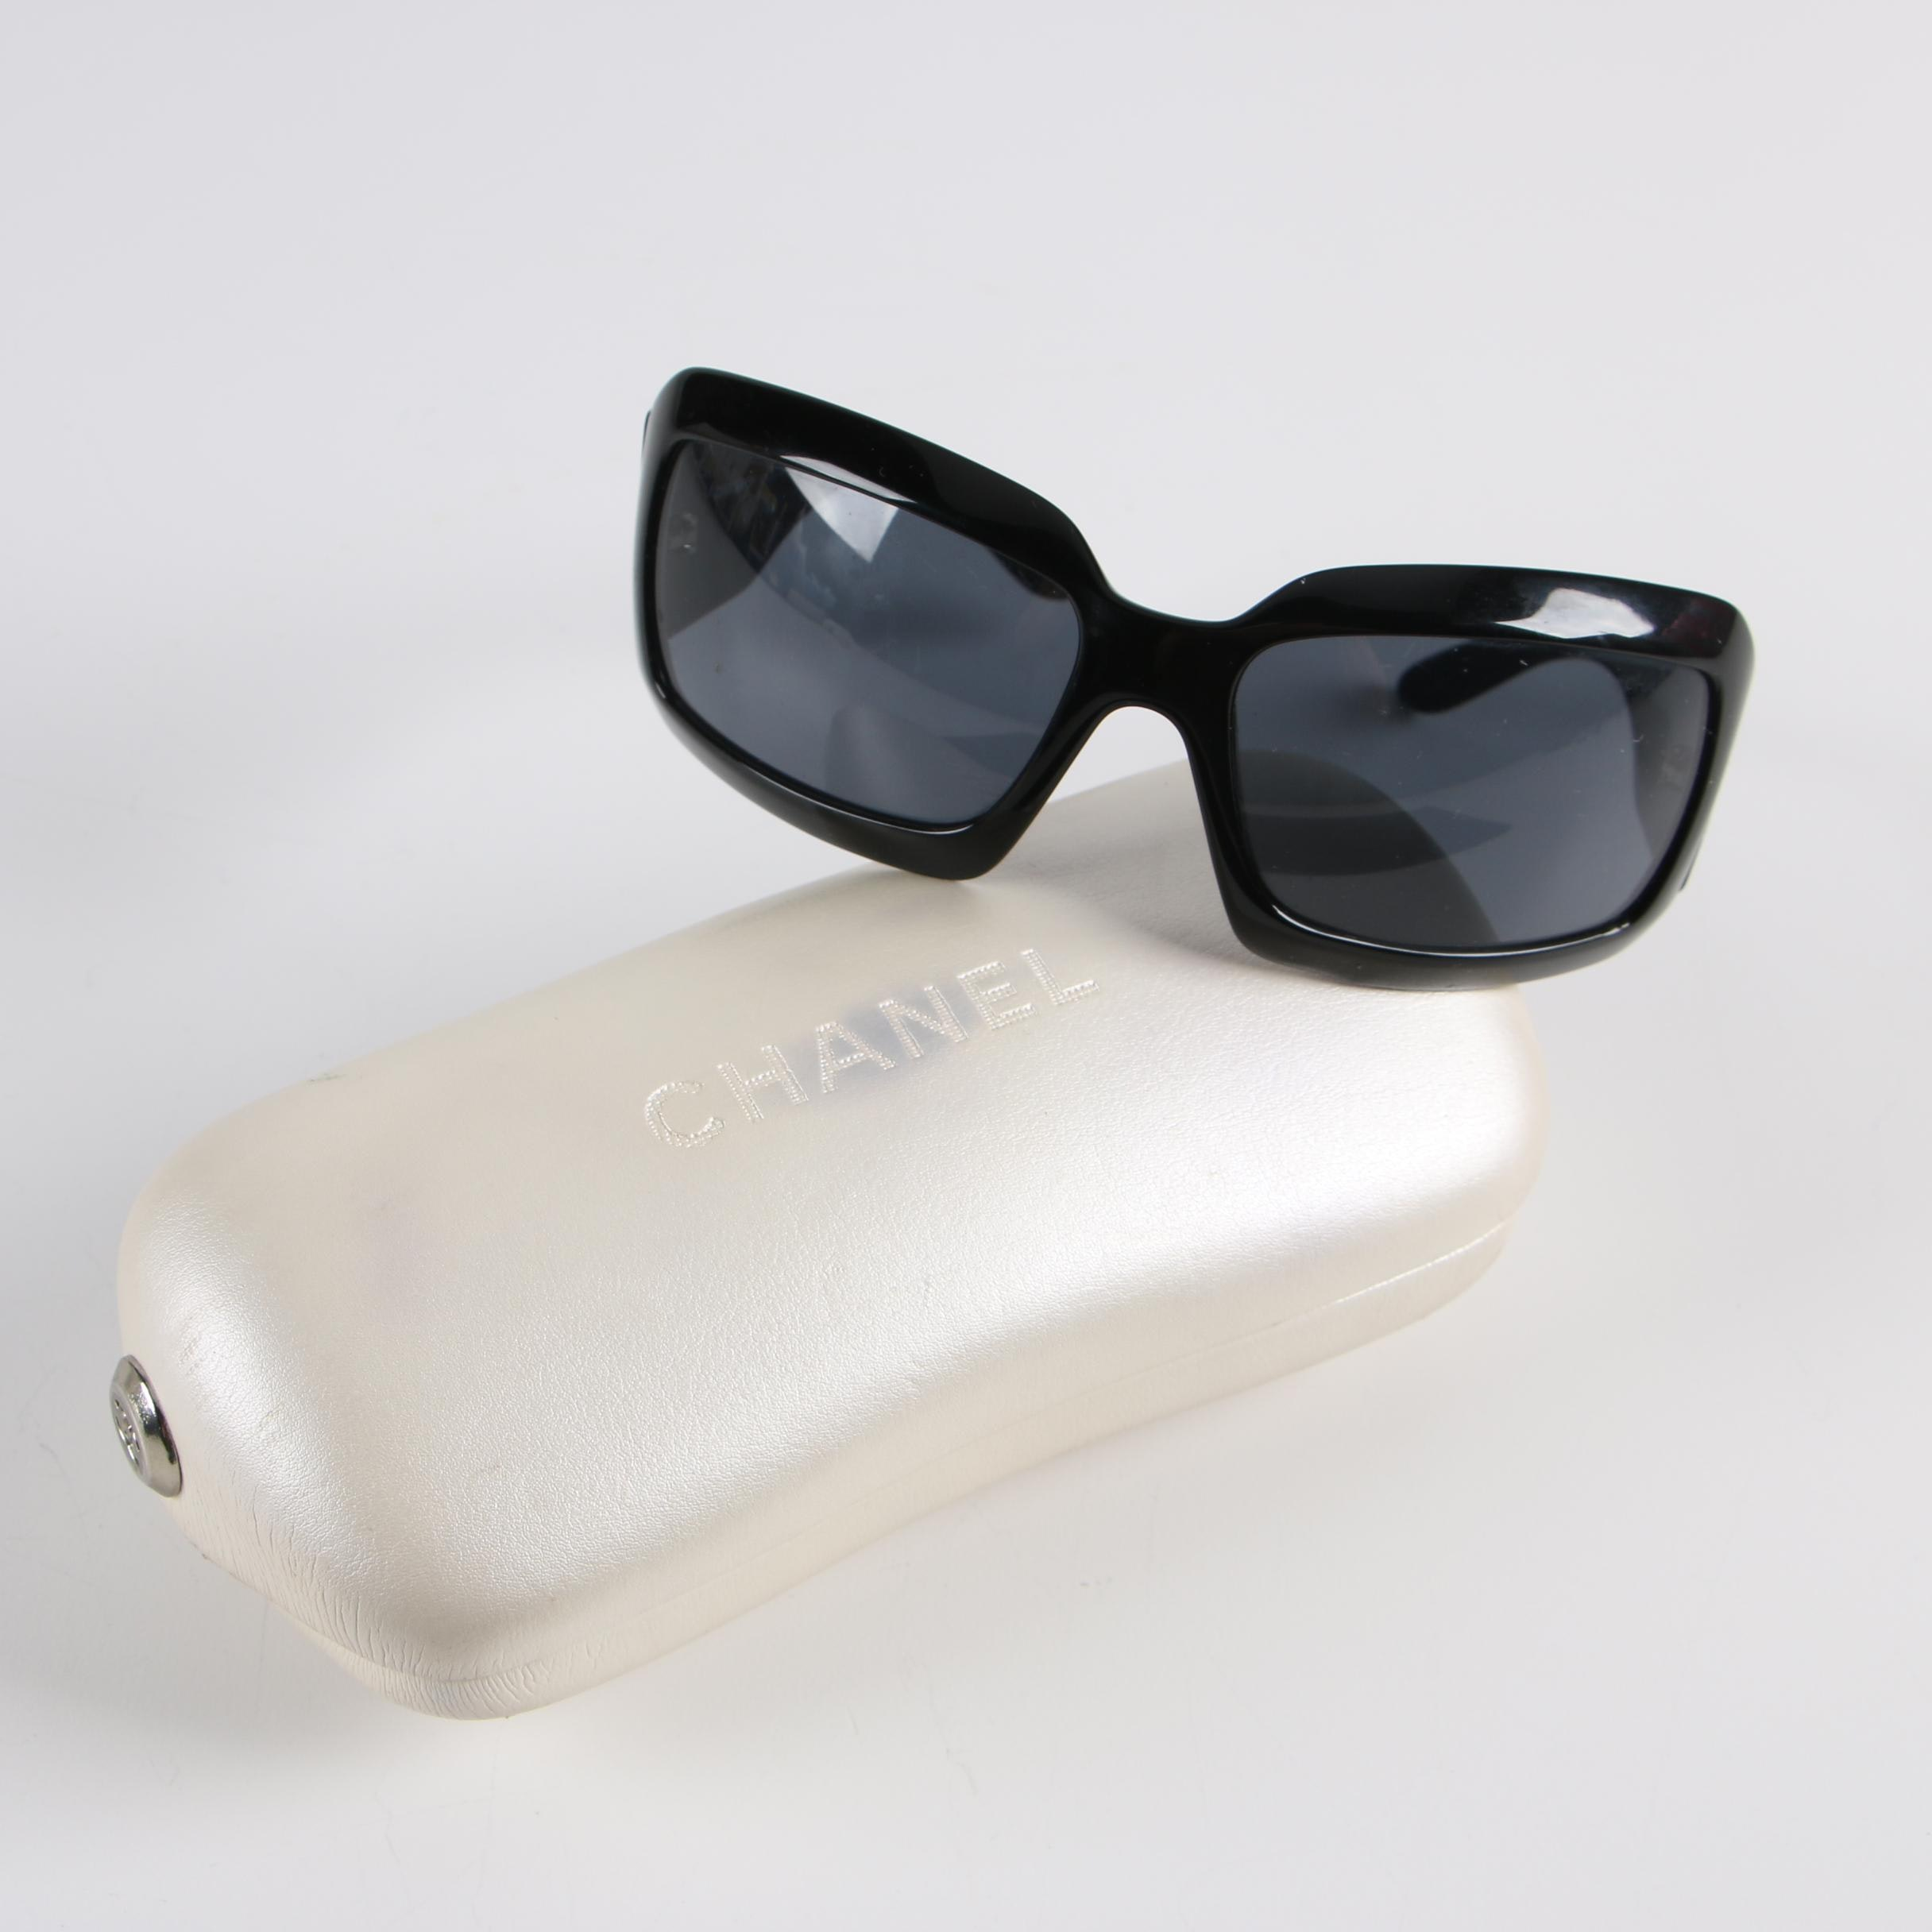 Chanel 5076-H Black Sunglasses with Case